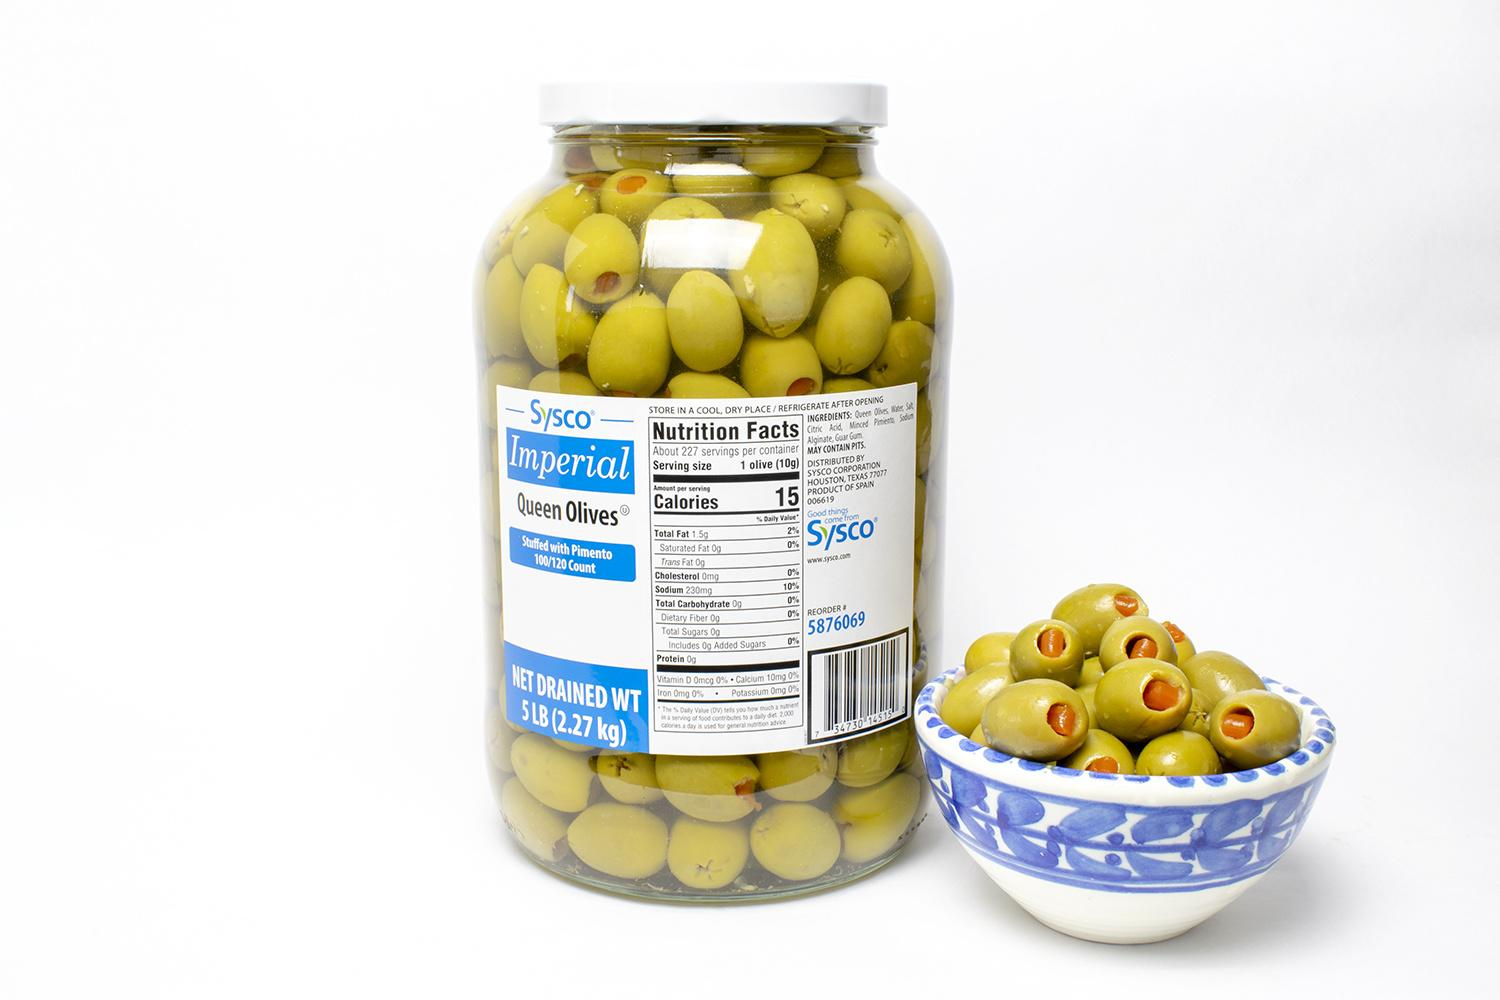 image of Olive Green Queen Pimento 100/120